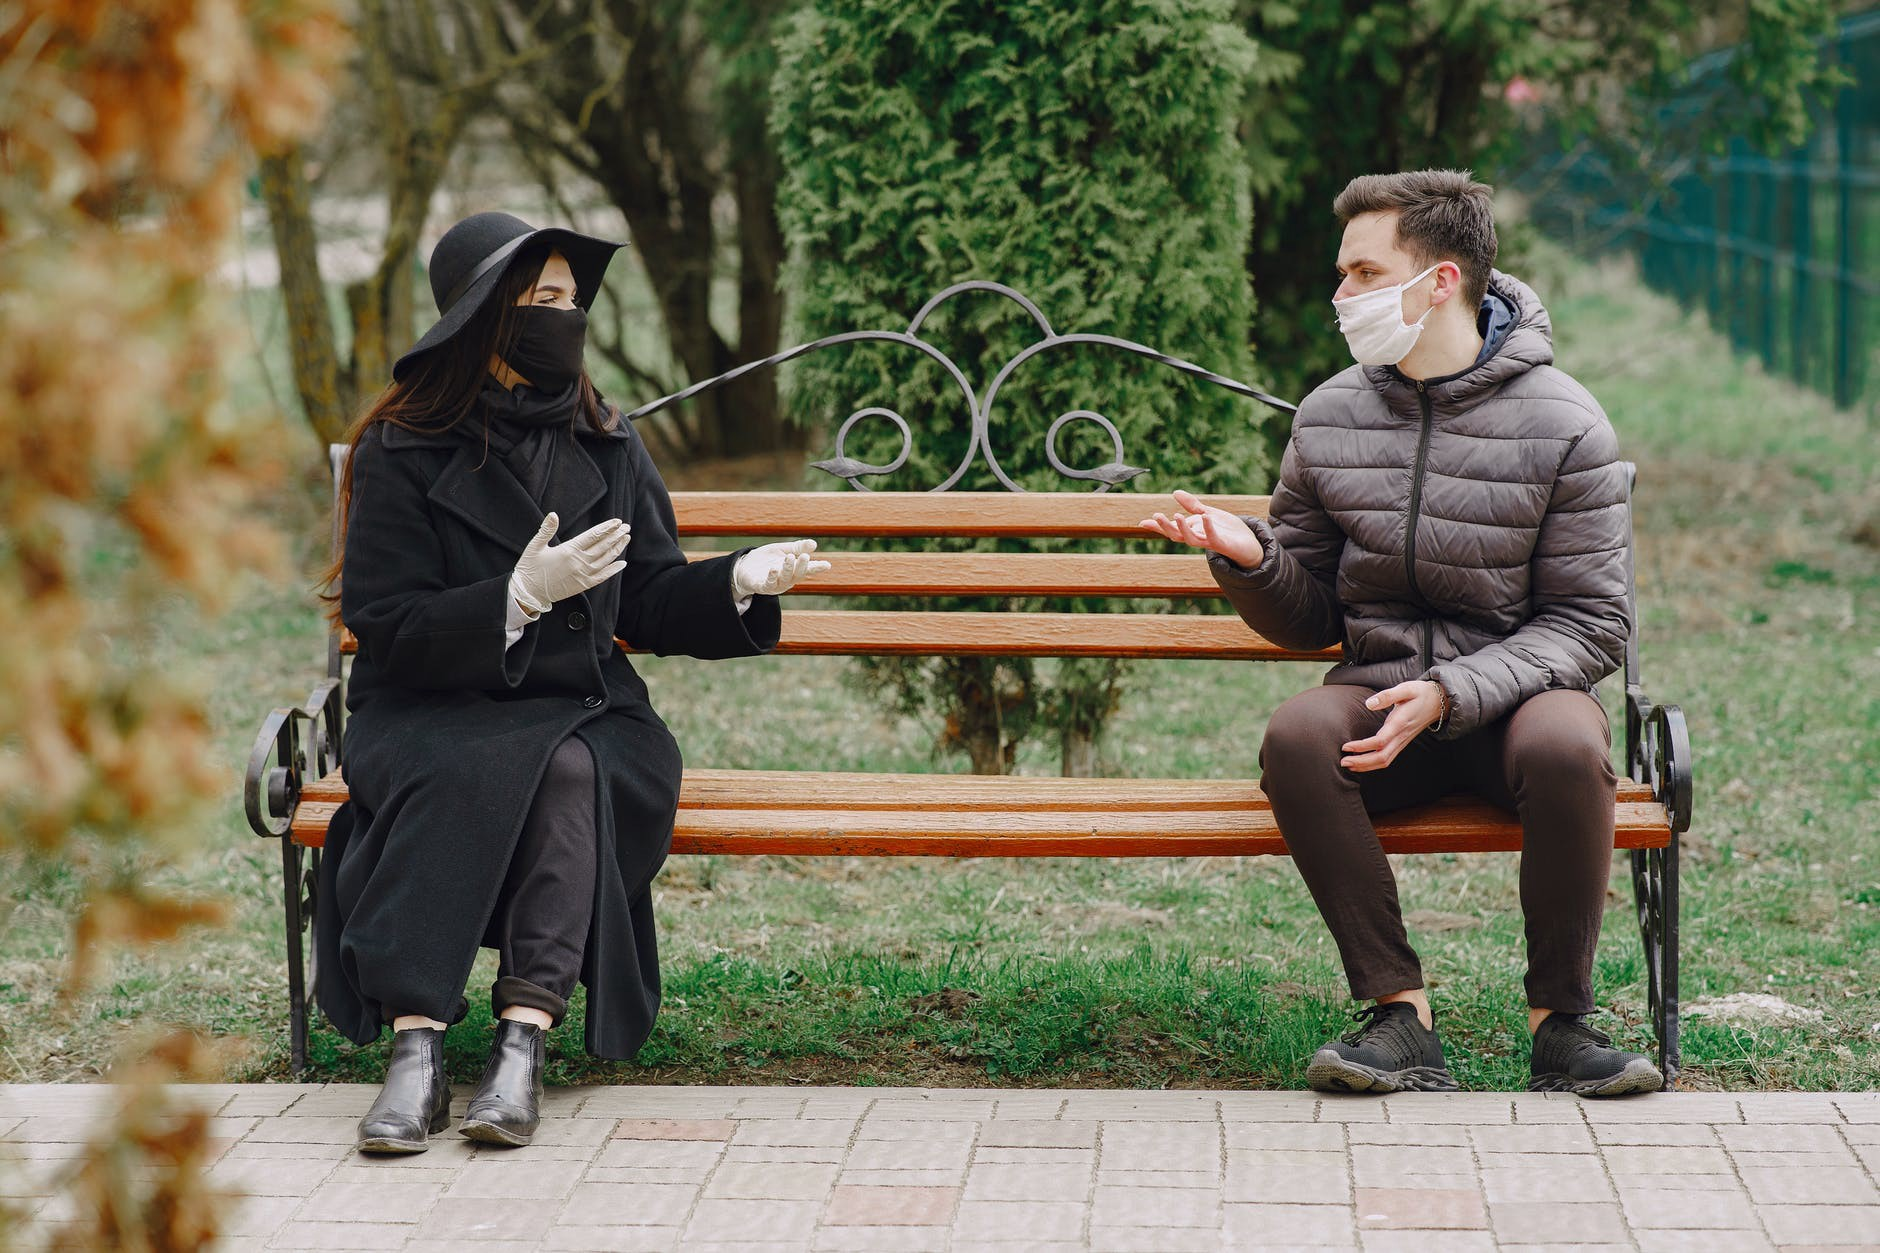 Two people wearing masks sit and converse on opposite ends of a park bench.